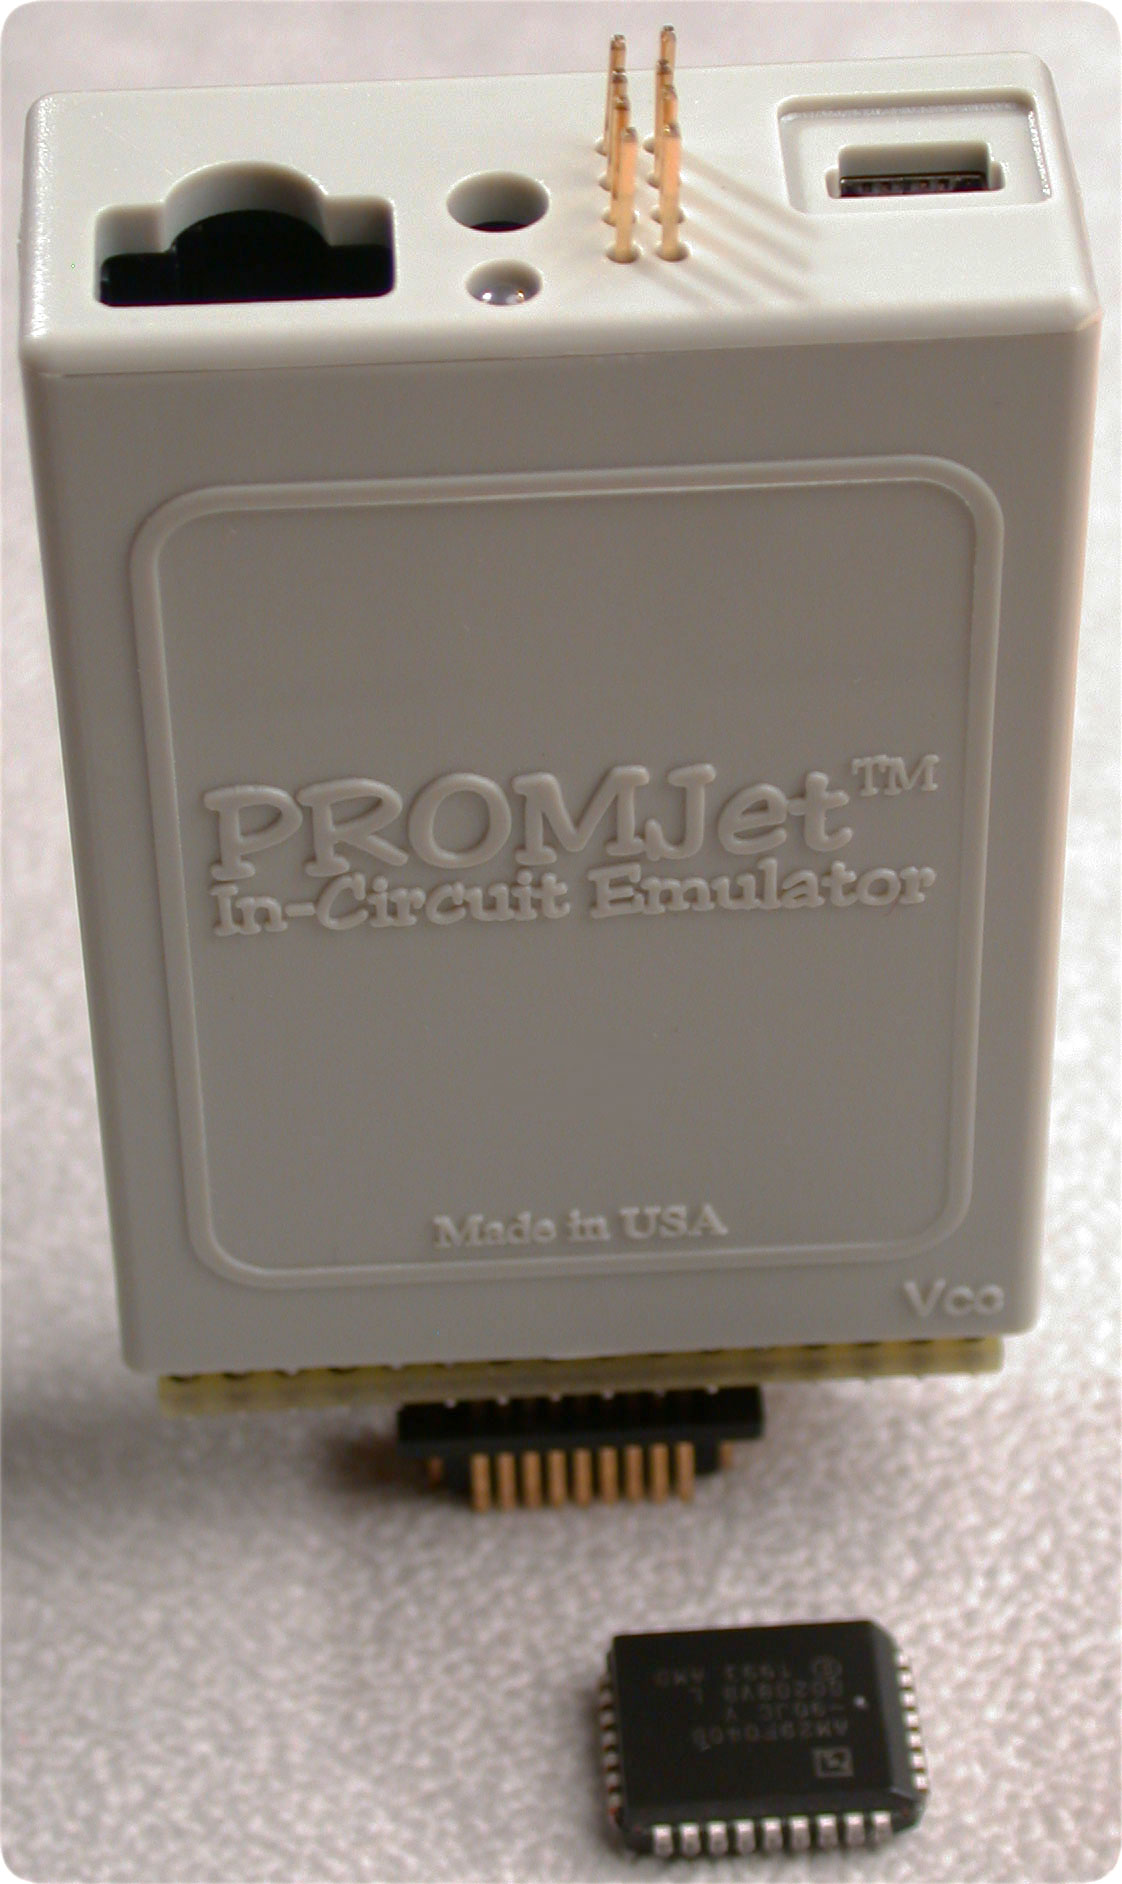 PROMJet LPC Flash Emulator